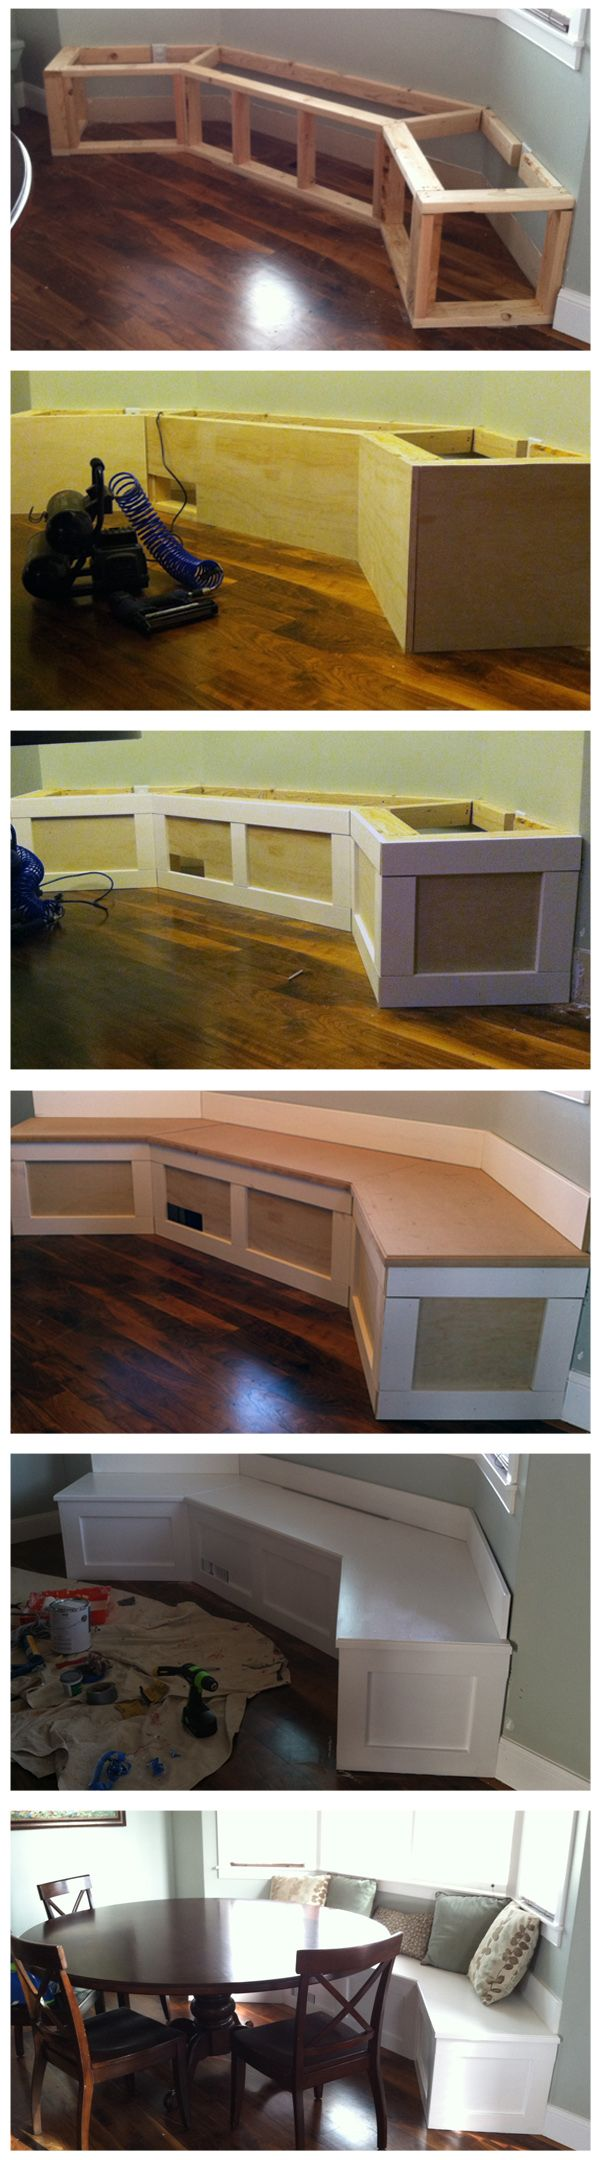 DIY Built-in